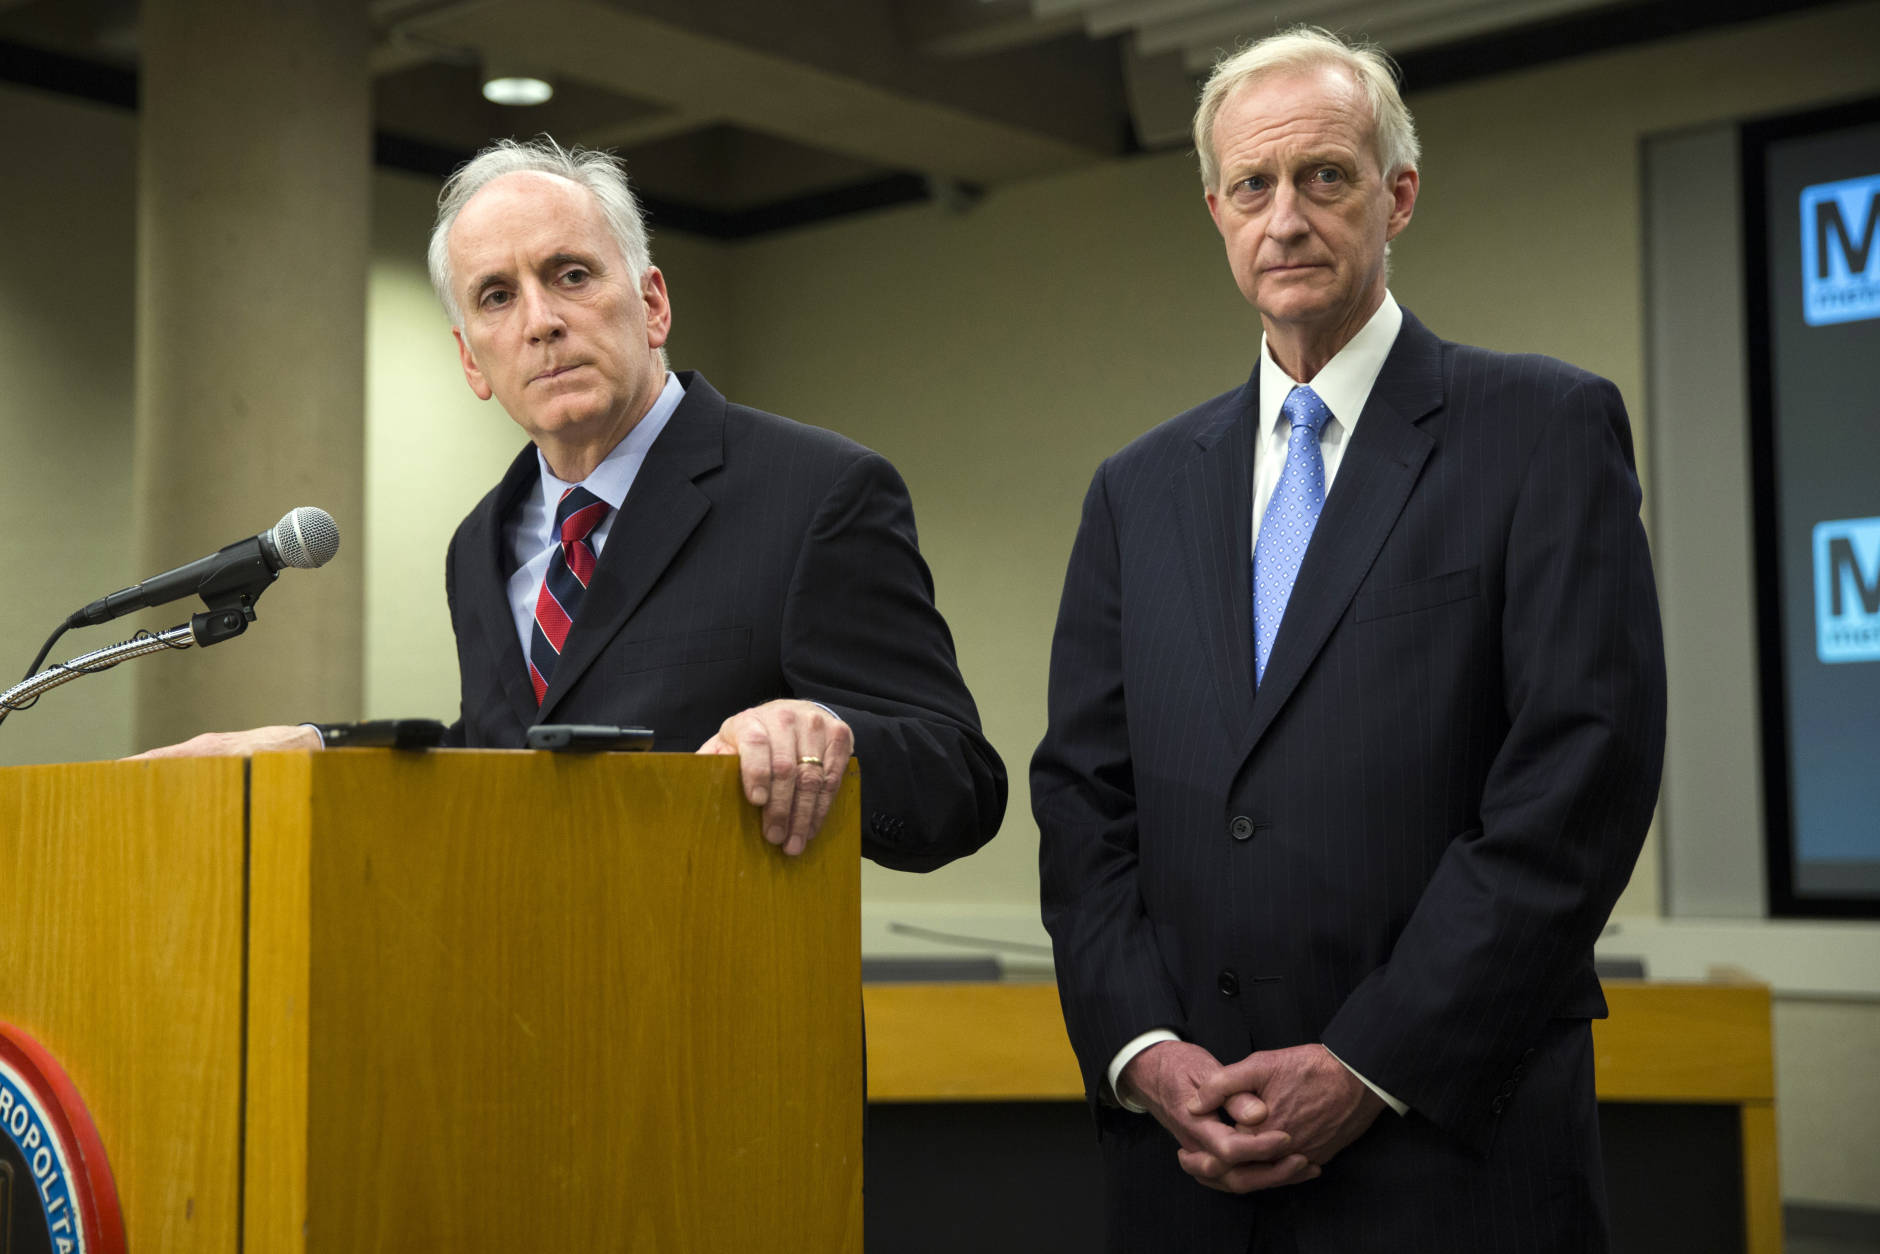 DC Council Member Jack Evans, right, and Metro General Manager Paul Wiedefeld listen to a question during a news conference to announce that the DC Metrorail service will be shut down for a fulls day, at the Washington Metropolitan Area Transit Authority headquarters, on Tuesday, March 15, 2016, in Washington. Wiedefeld said the system would be shut down for an emergency inspection of the system's third rail power cables. (AP Photo/Evan Vucci)